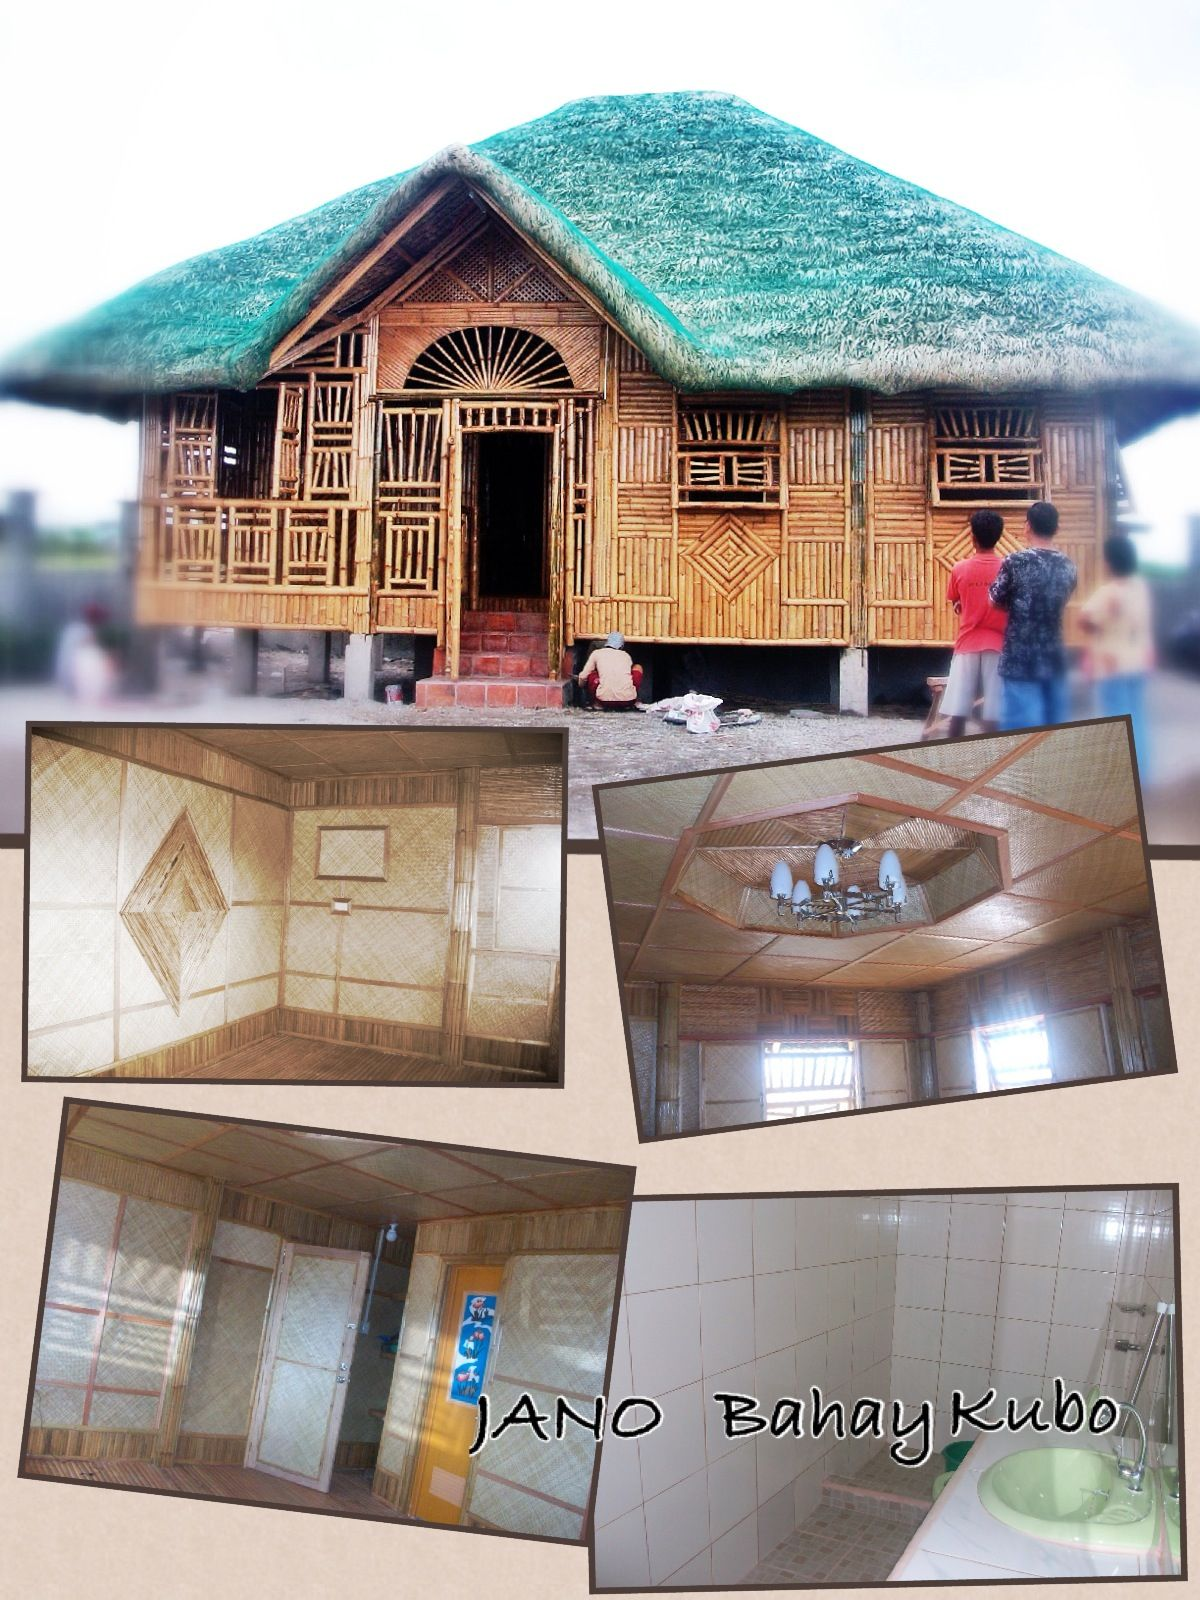 8x10meters concrete nipahut bahay kubo bamboo house bamboo architecture bamboo furniture tropical